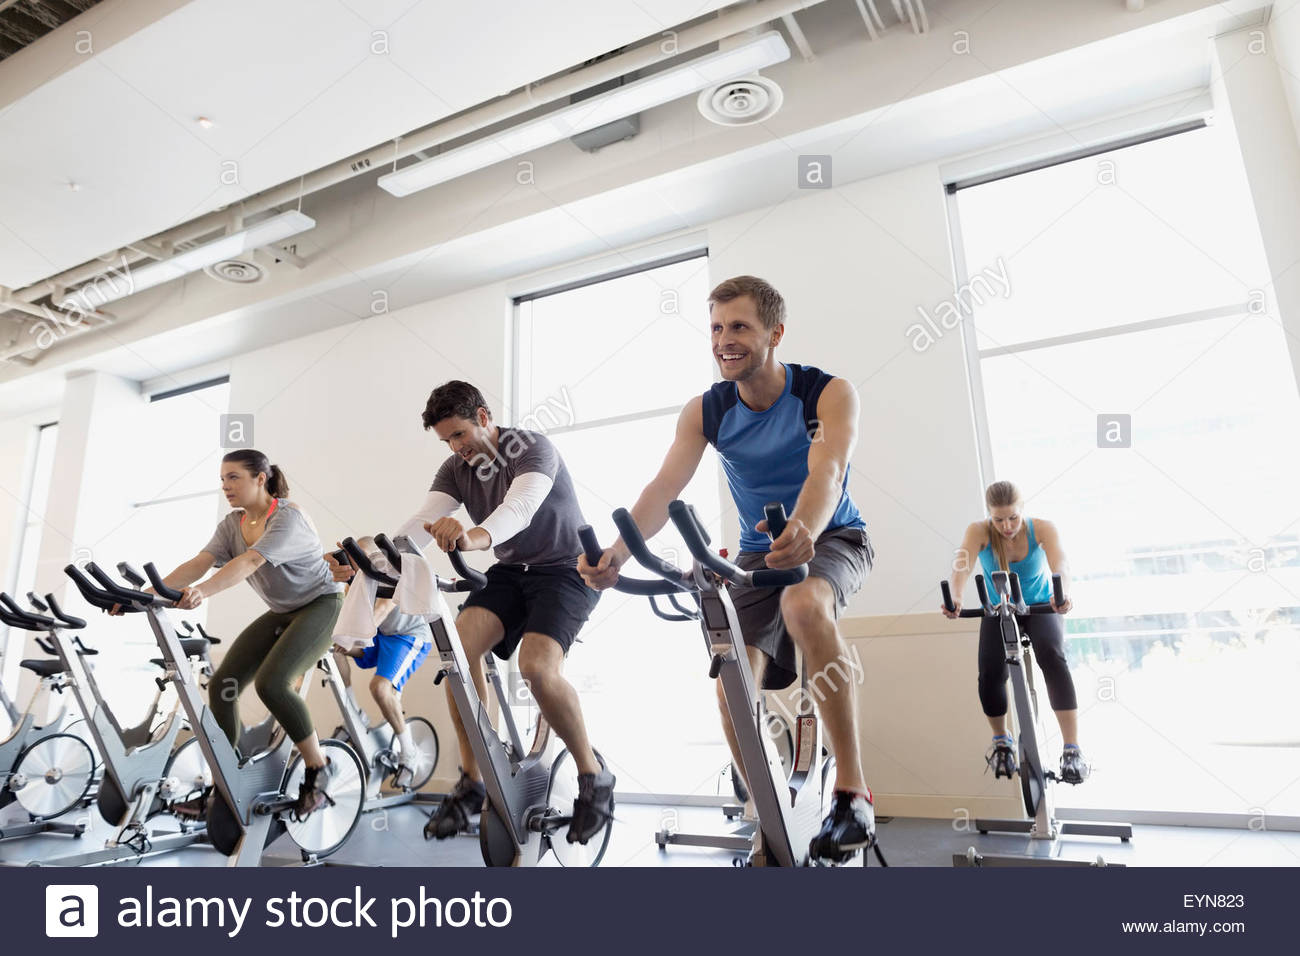 Spin class on stationary bikes at gym Stock Photo